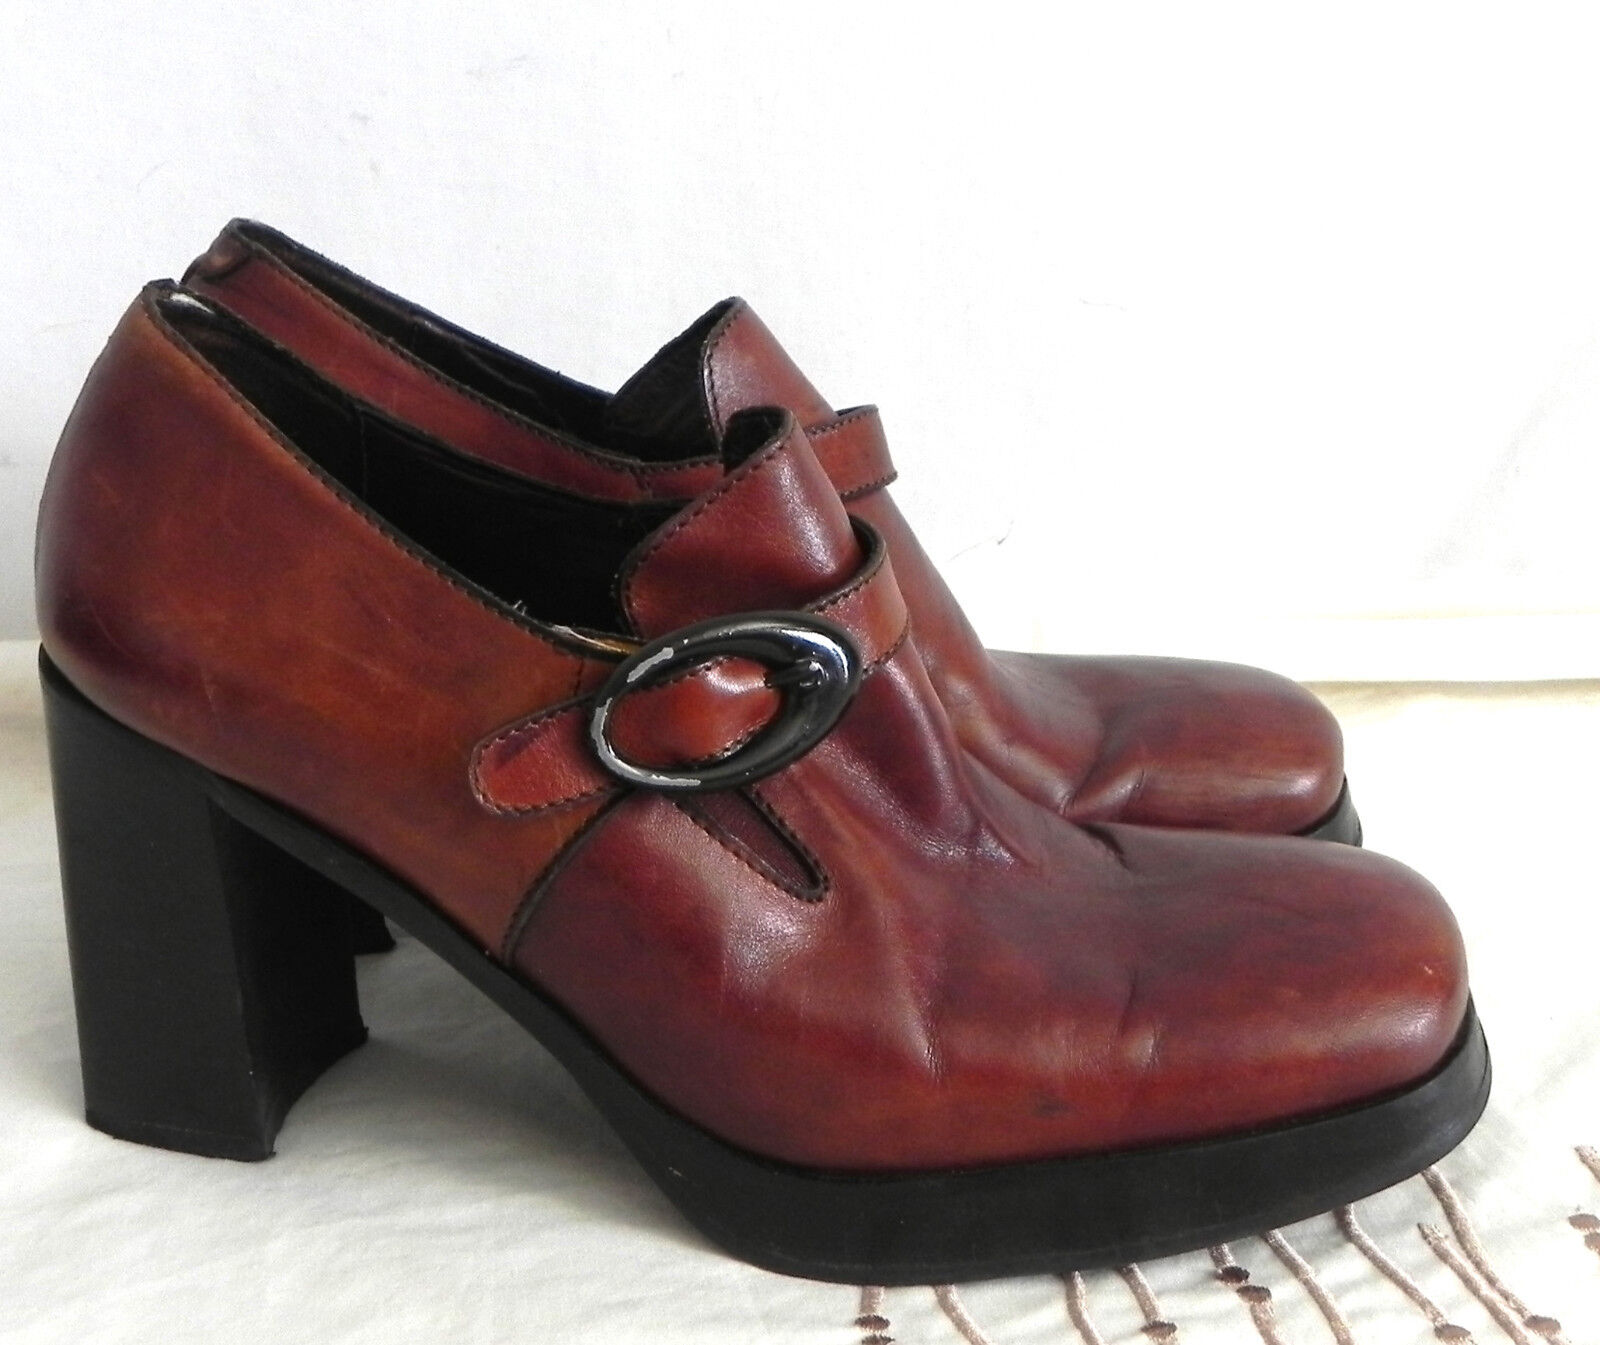 Altariva Heels Hand Made Roma Brown Leather Size 37.5(US 7)